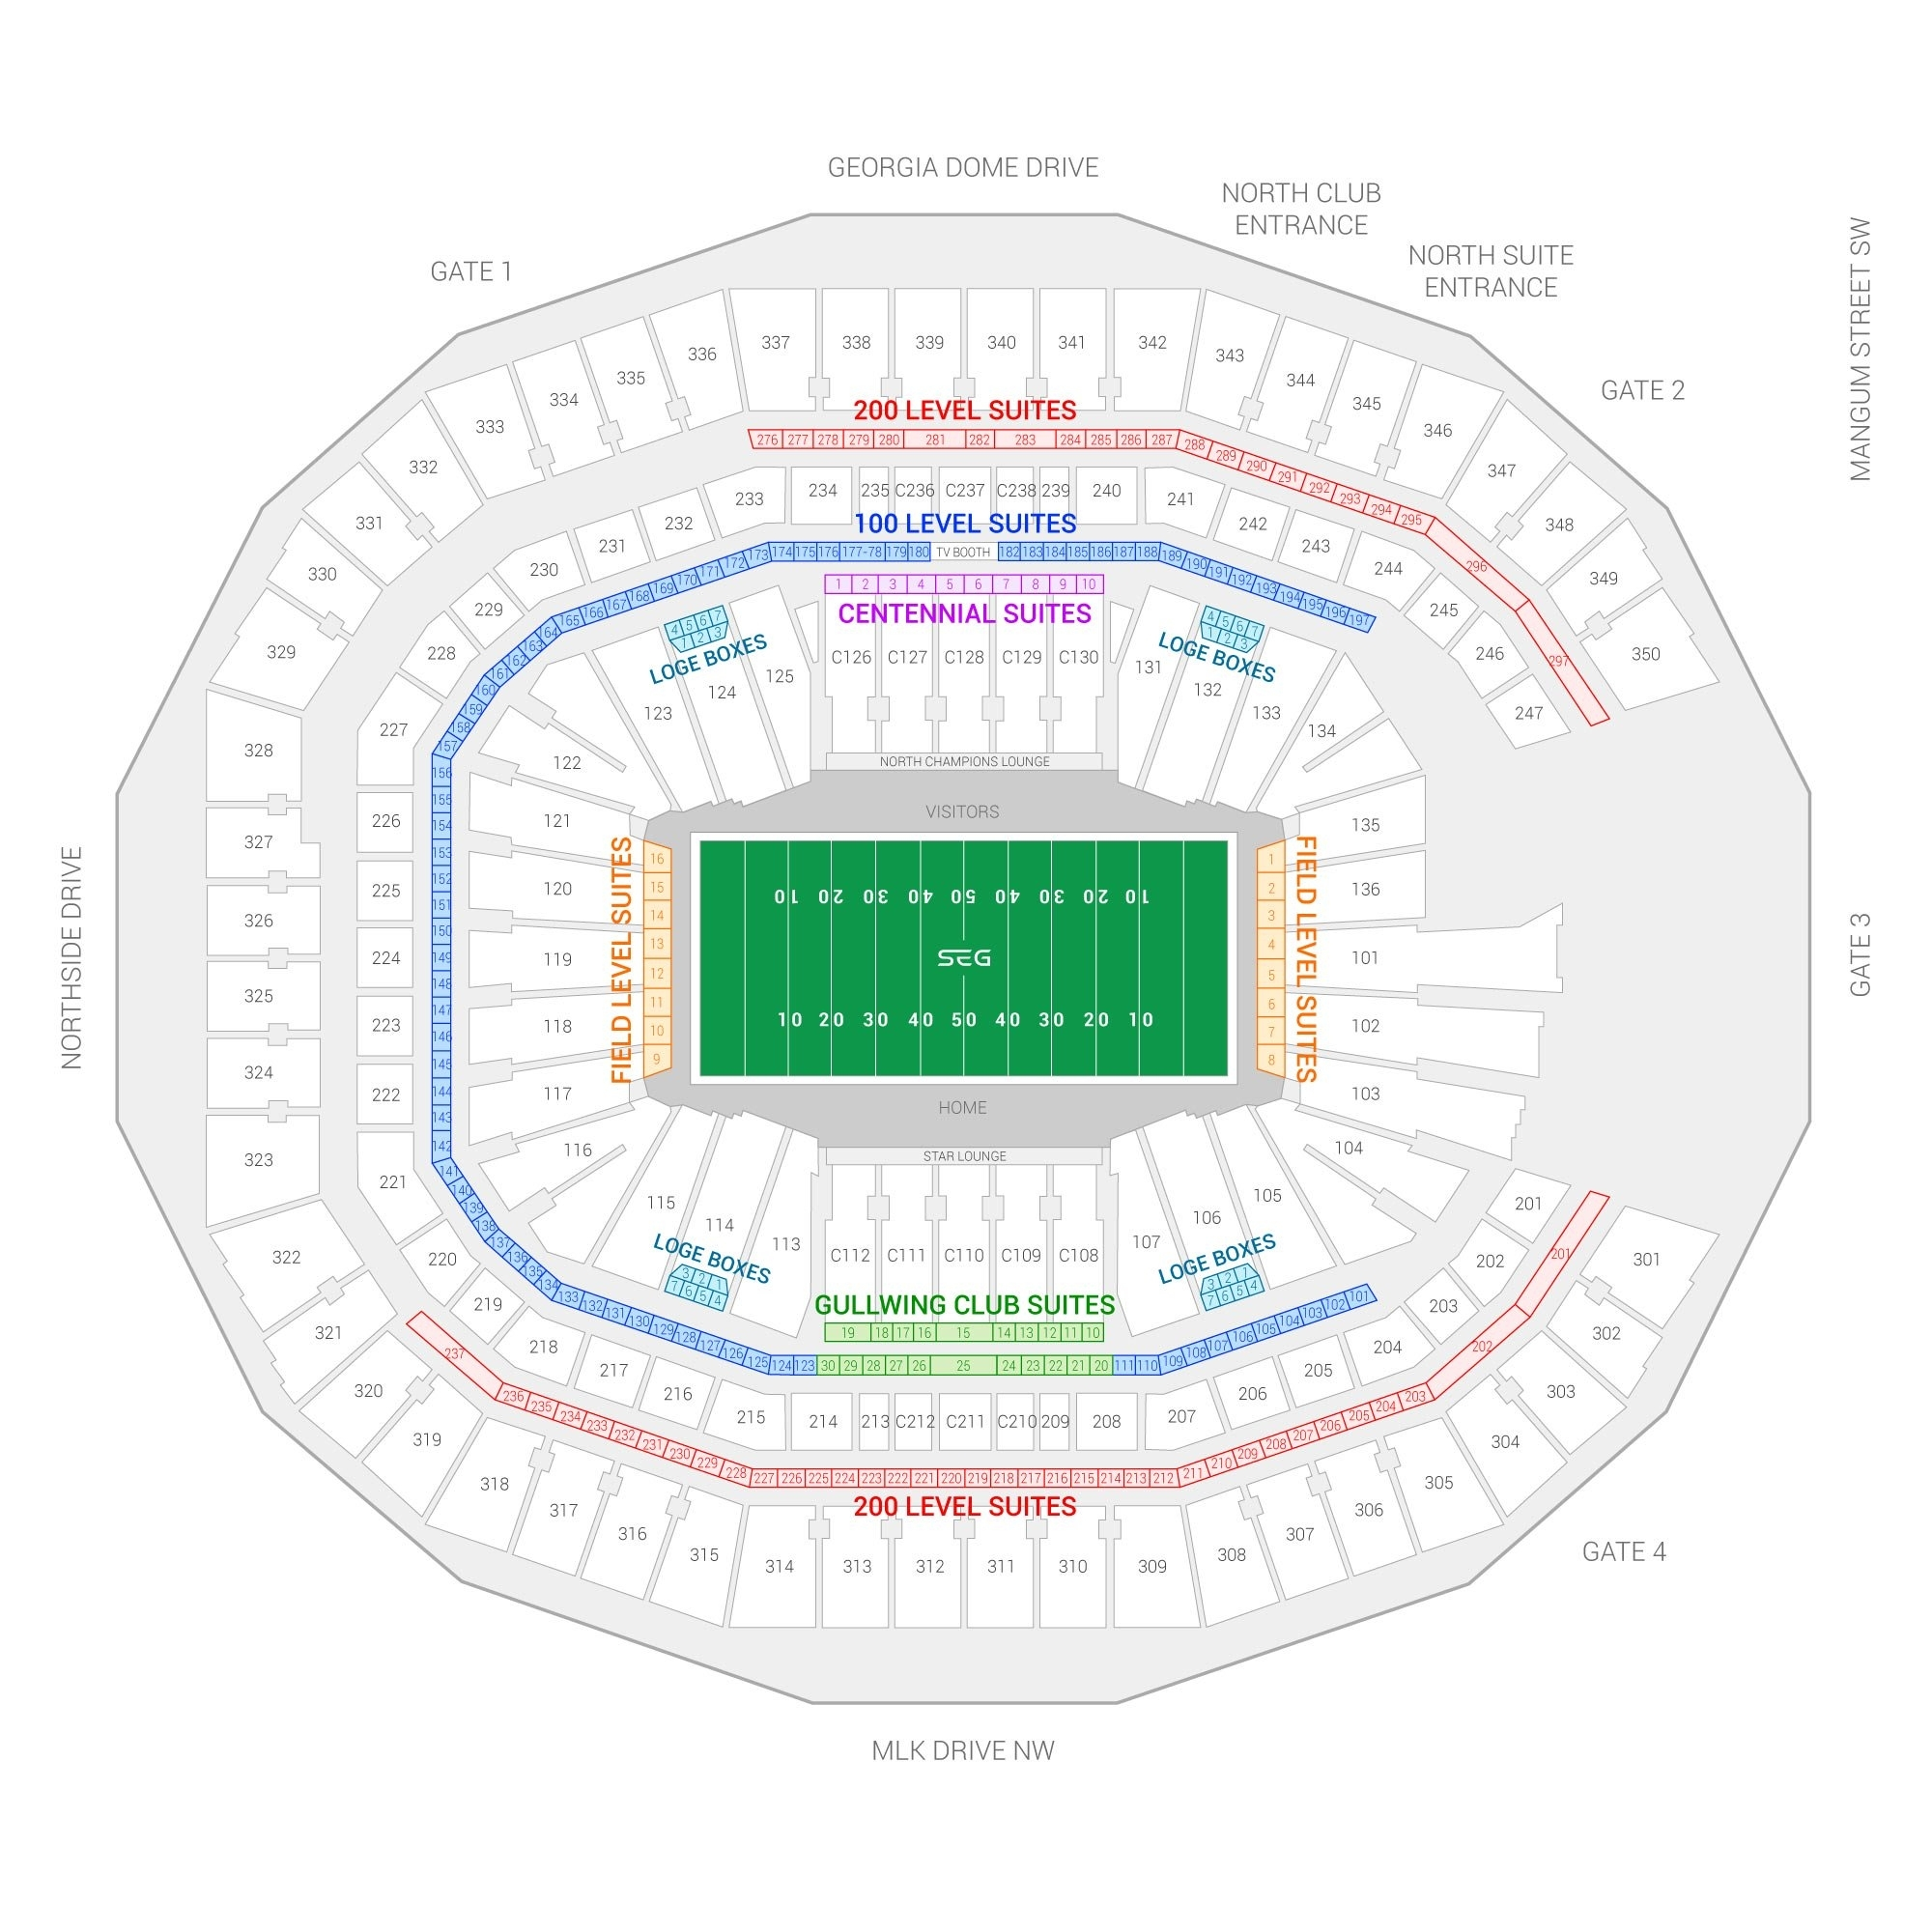 Super Bowl Liii Suite Rentals | Mercedes-Benz Stadium regarding Super Bowl Stadium 2019 Seating Chart